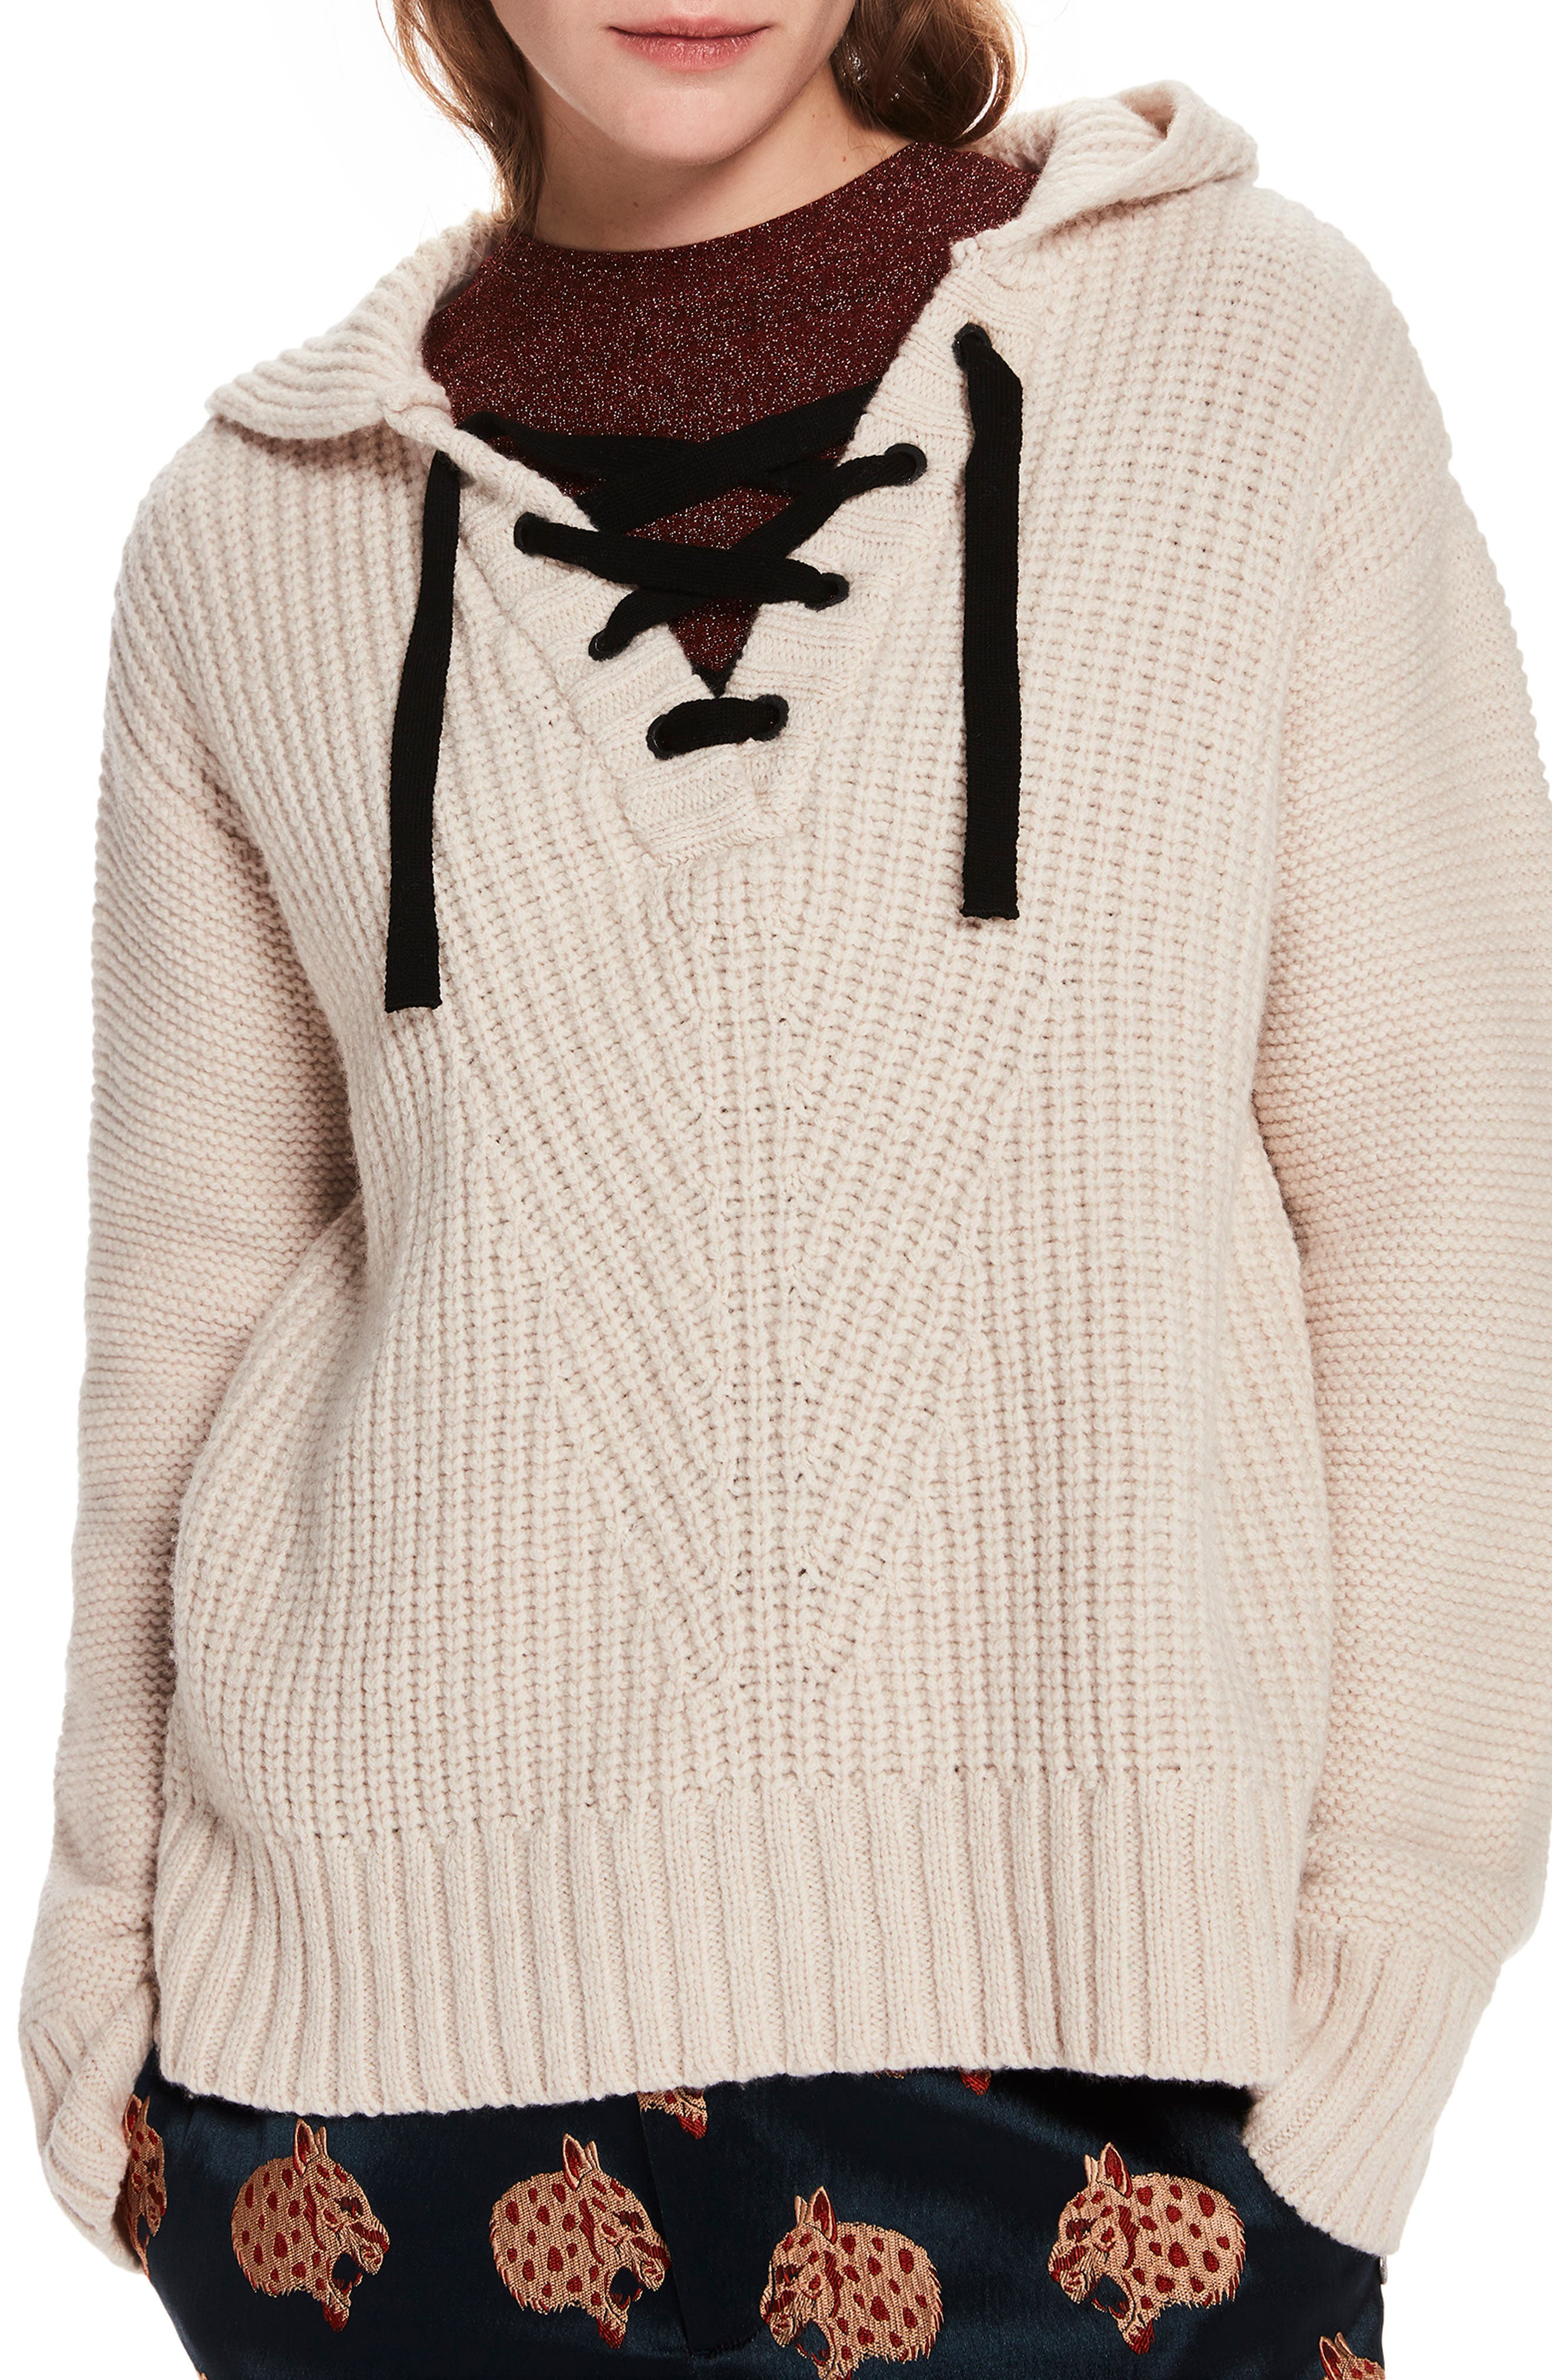 Lace-Up Knit Hooded Sweater,                             Main thumbnail 1, color,                             CREAM